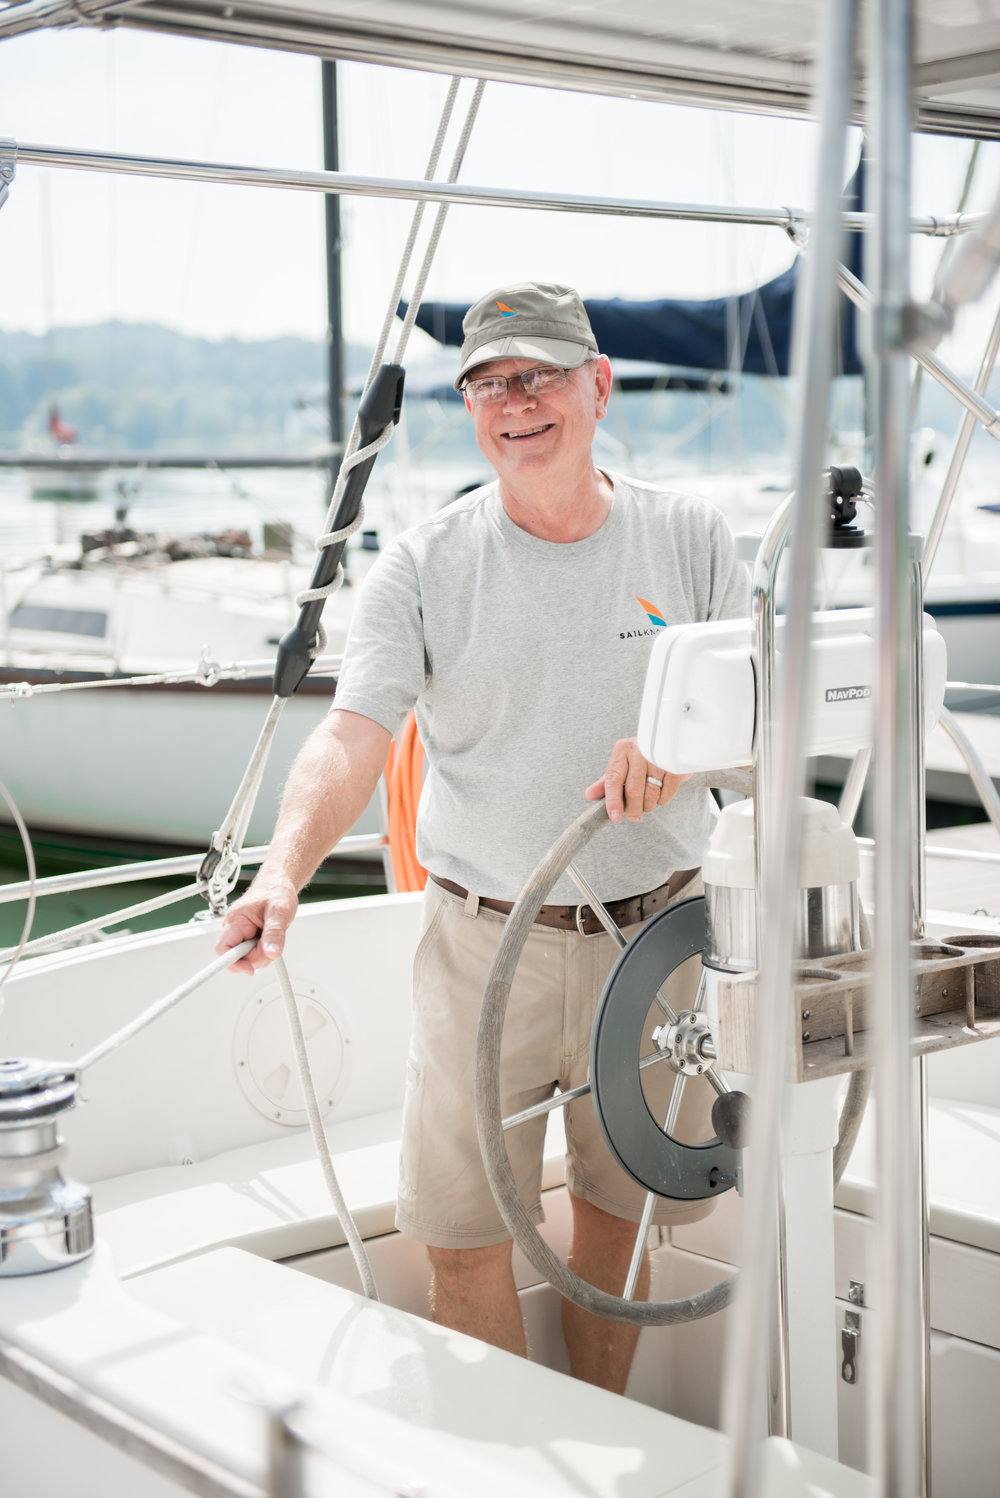 I Love Local, Knoxville, TN - Sail Knoxville-2469.jpg